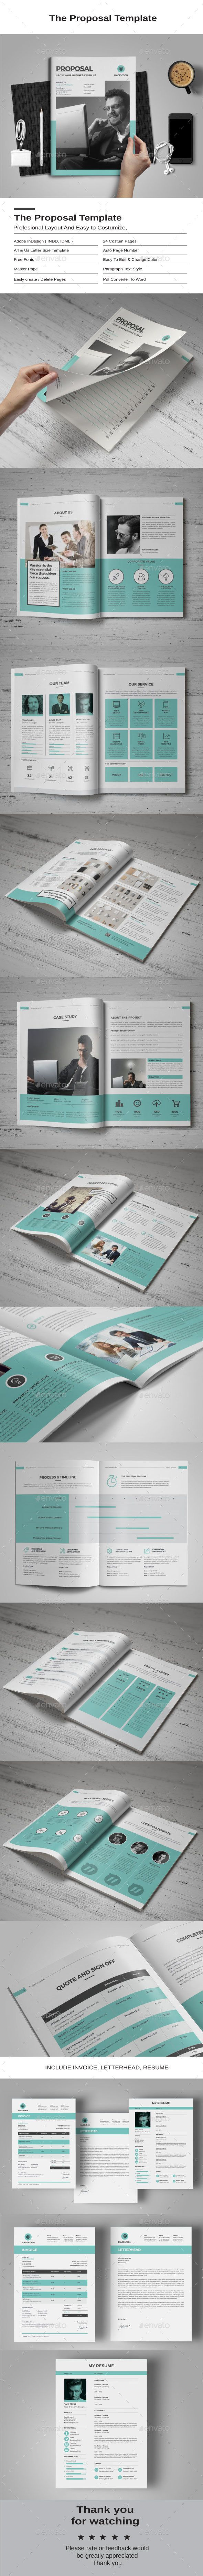 Proposal — InDesign INDD #report #corporate • Download ➝ https://graphicriver.net/item/proposal/19362412?ref=pxcr